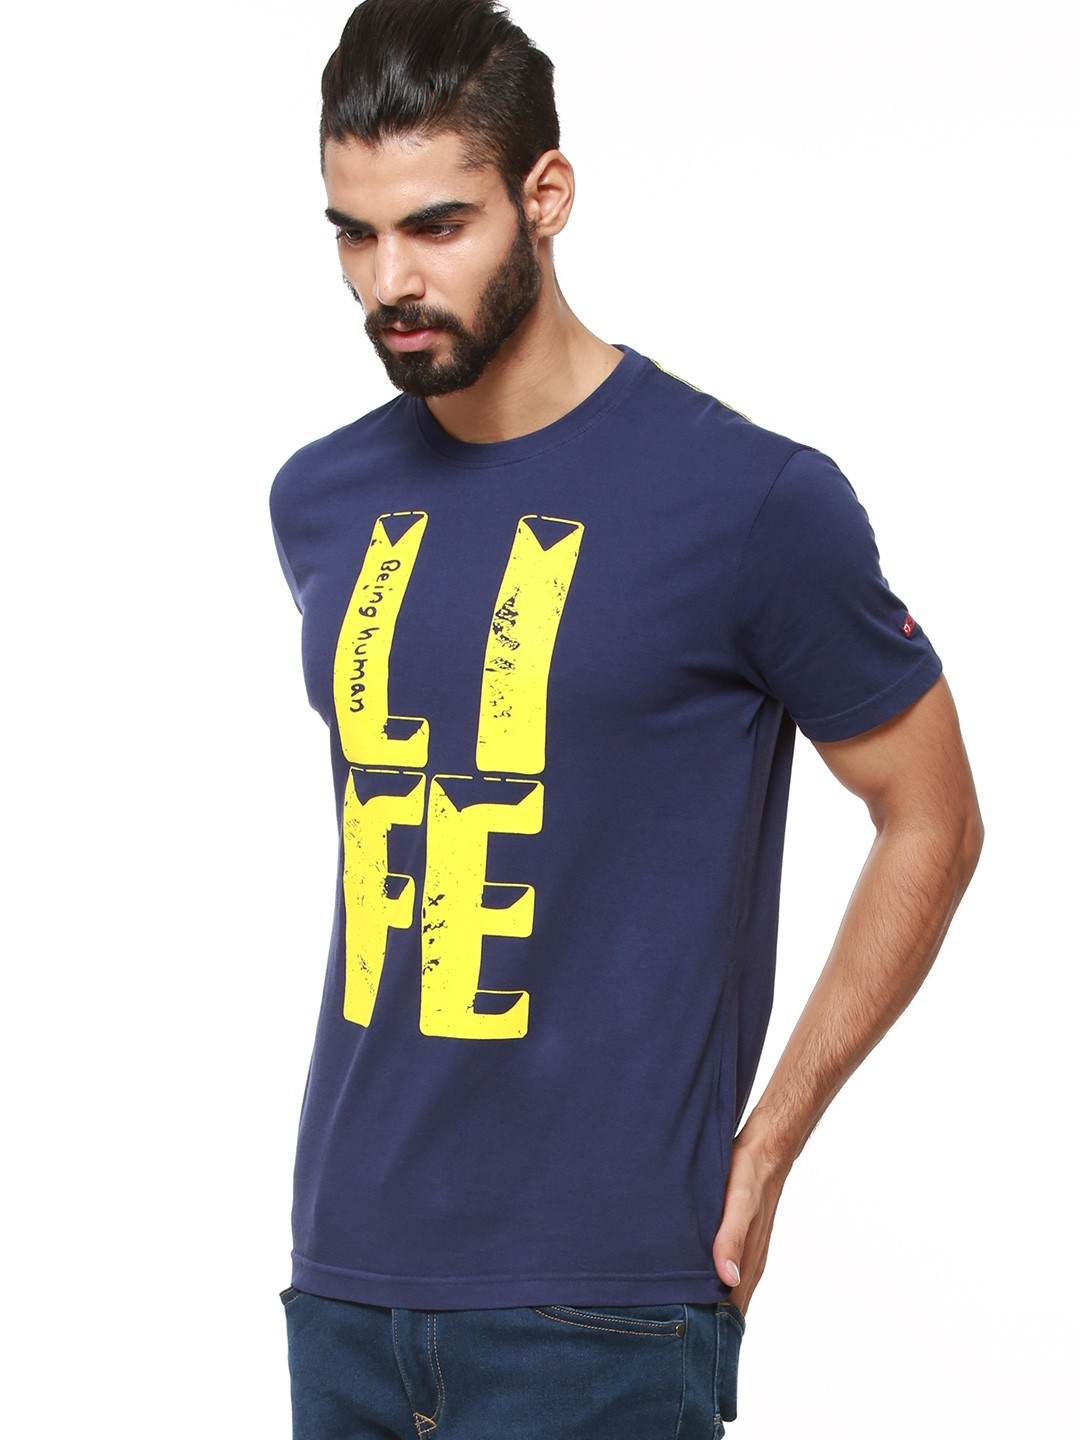 buy being human t shirt with life print for men men 39 s